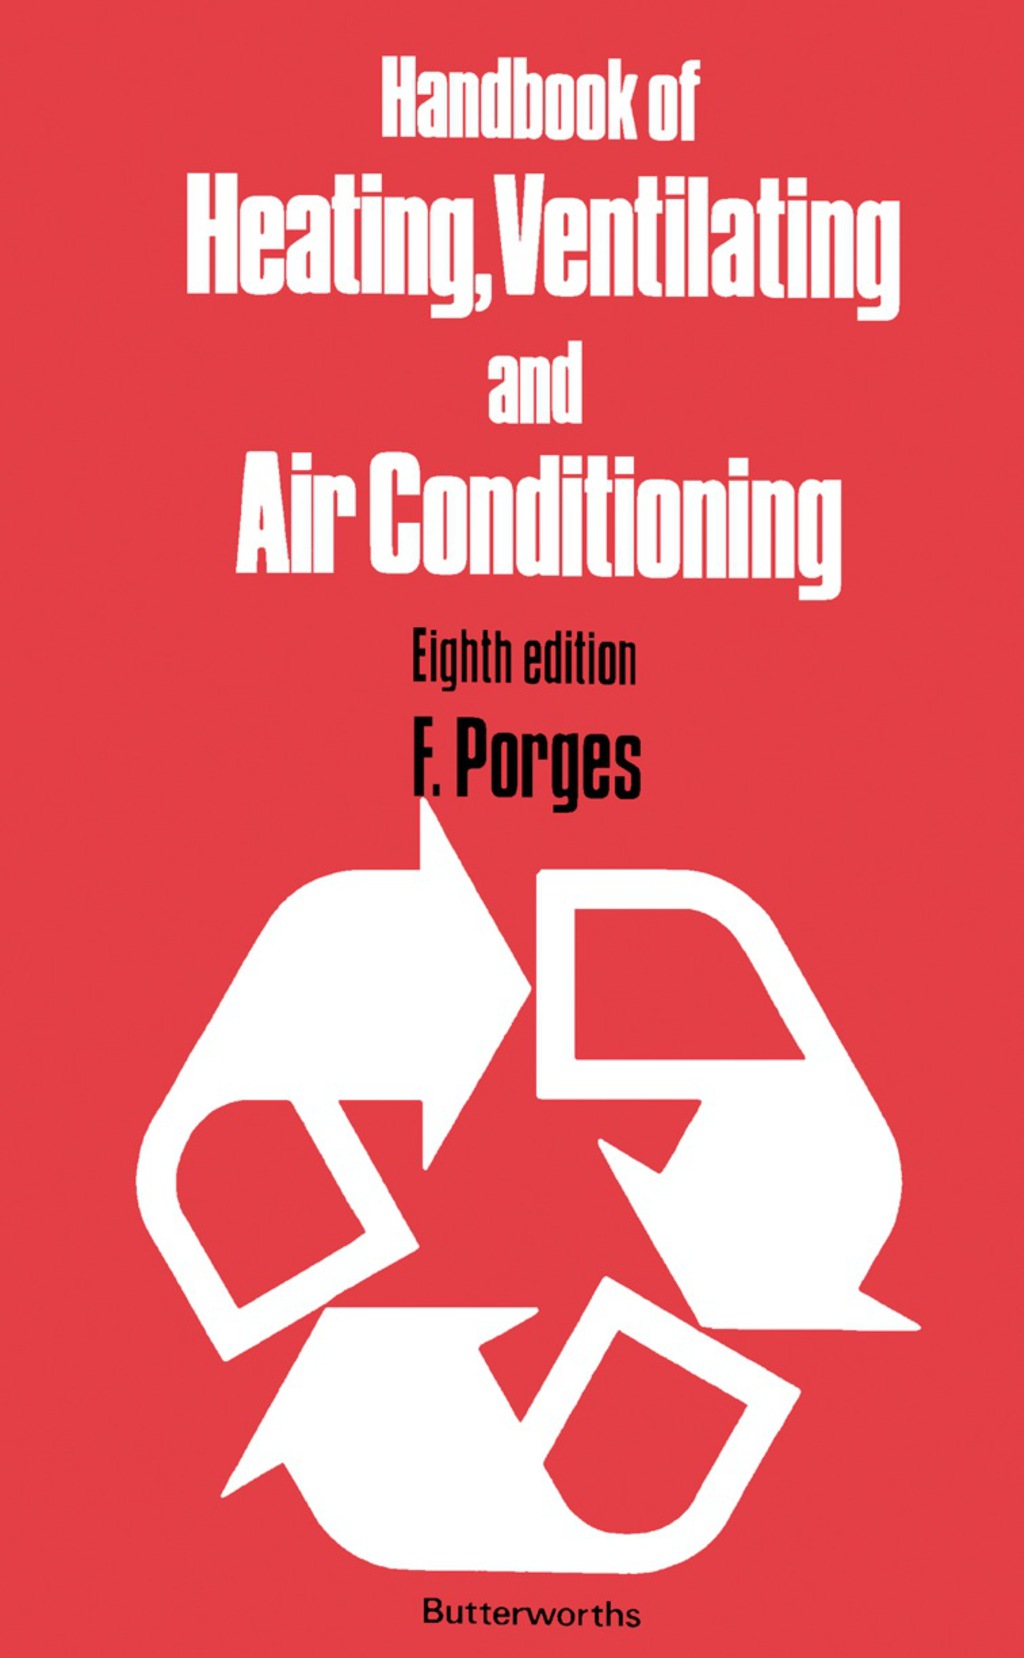 Handbook of Heating, Ventilating and Air Conditioning (ebook) eBooks